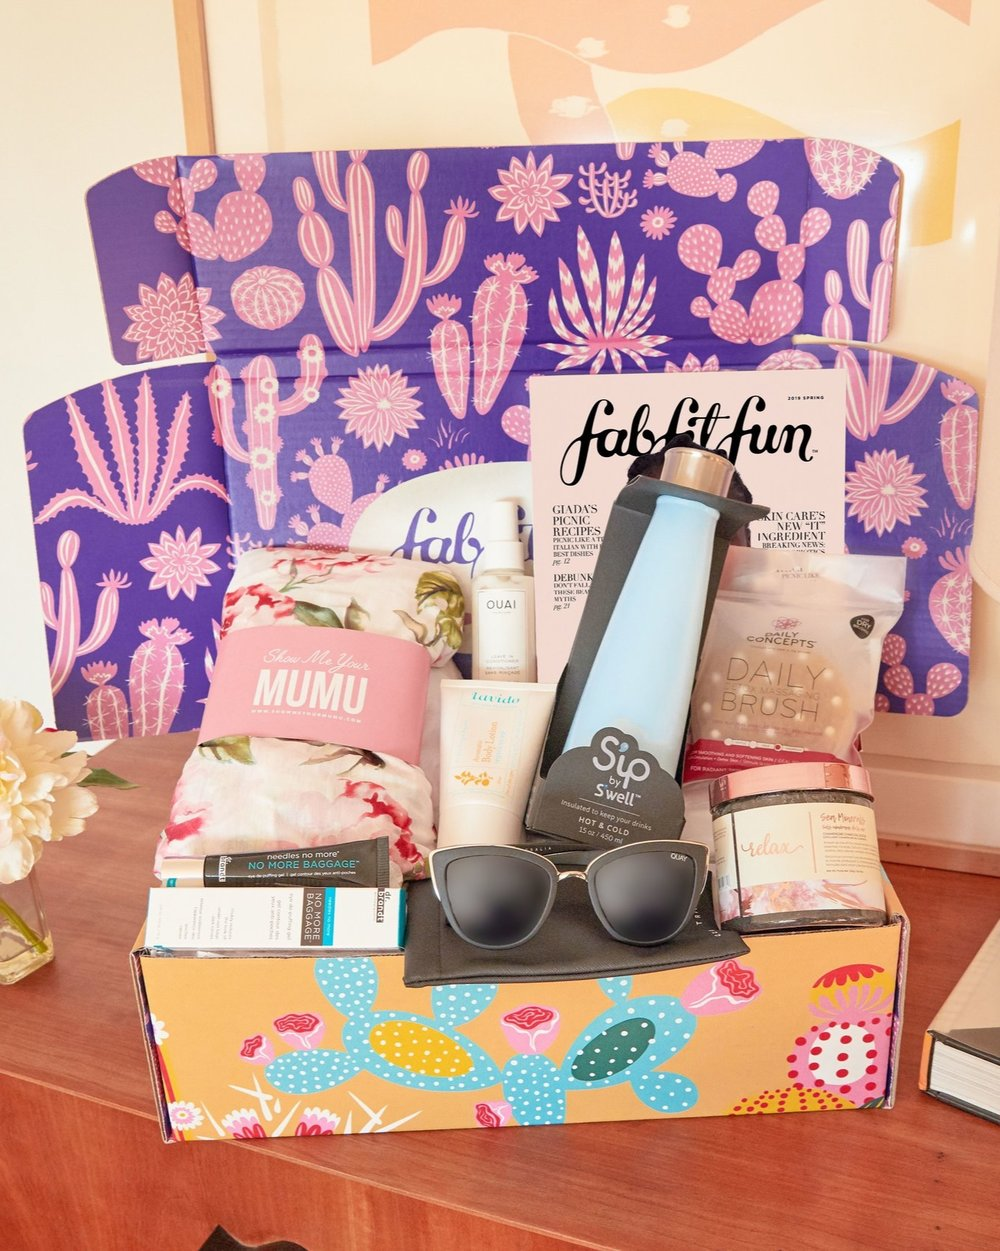 FabFitFun - Do you love wandering the aisles at your fave makeup store, tossing new products in the basket, yelling TREAT YO' SELF? FabFitFun is like that except the full-size, premium products are sent directly to you once per season.